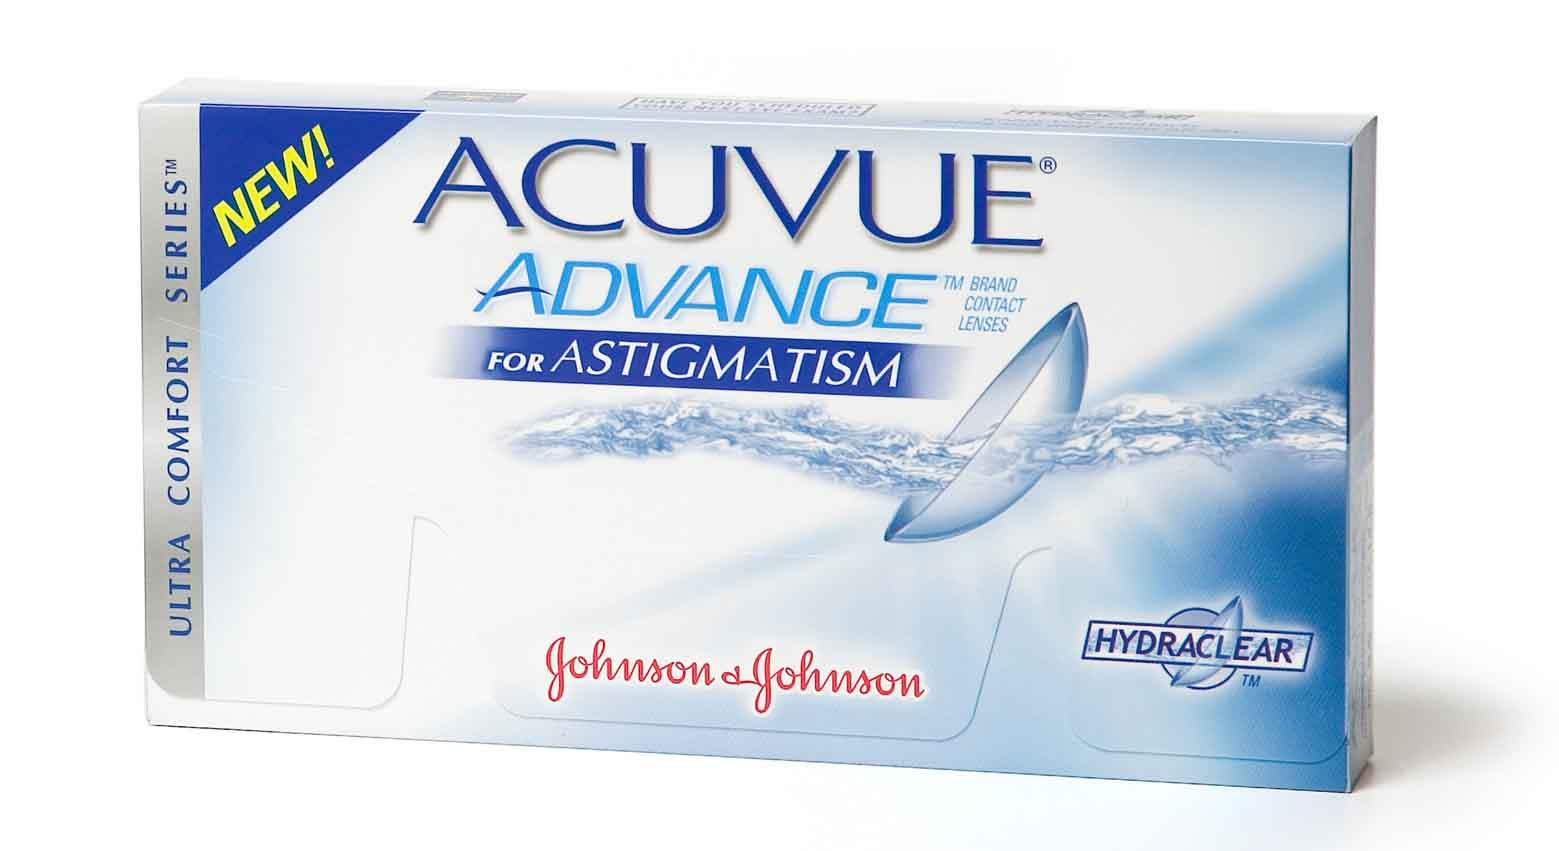 Acuvue Advance for astigmatism (Johnson & Johnson)